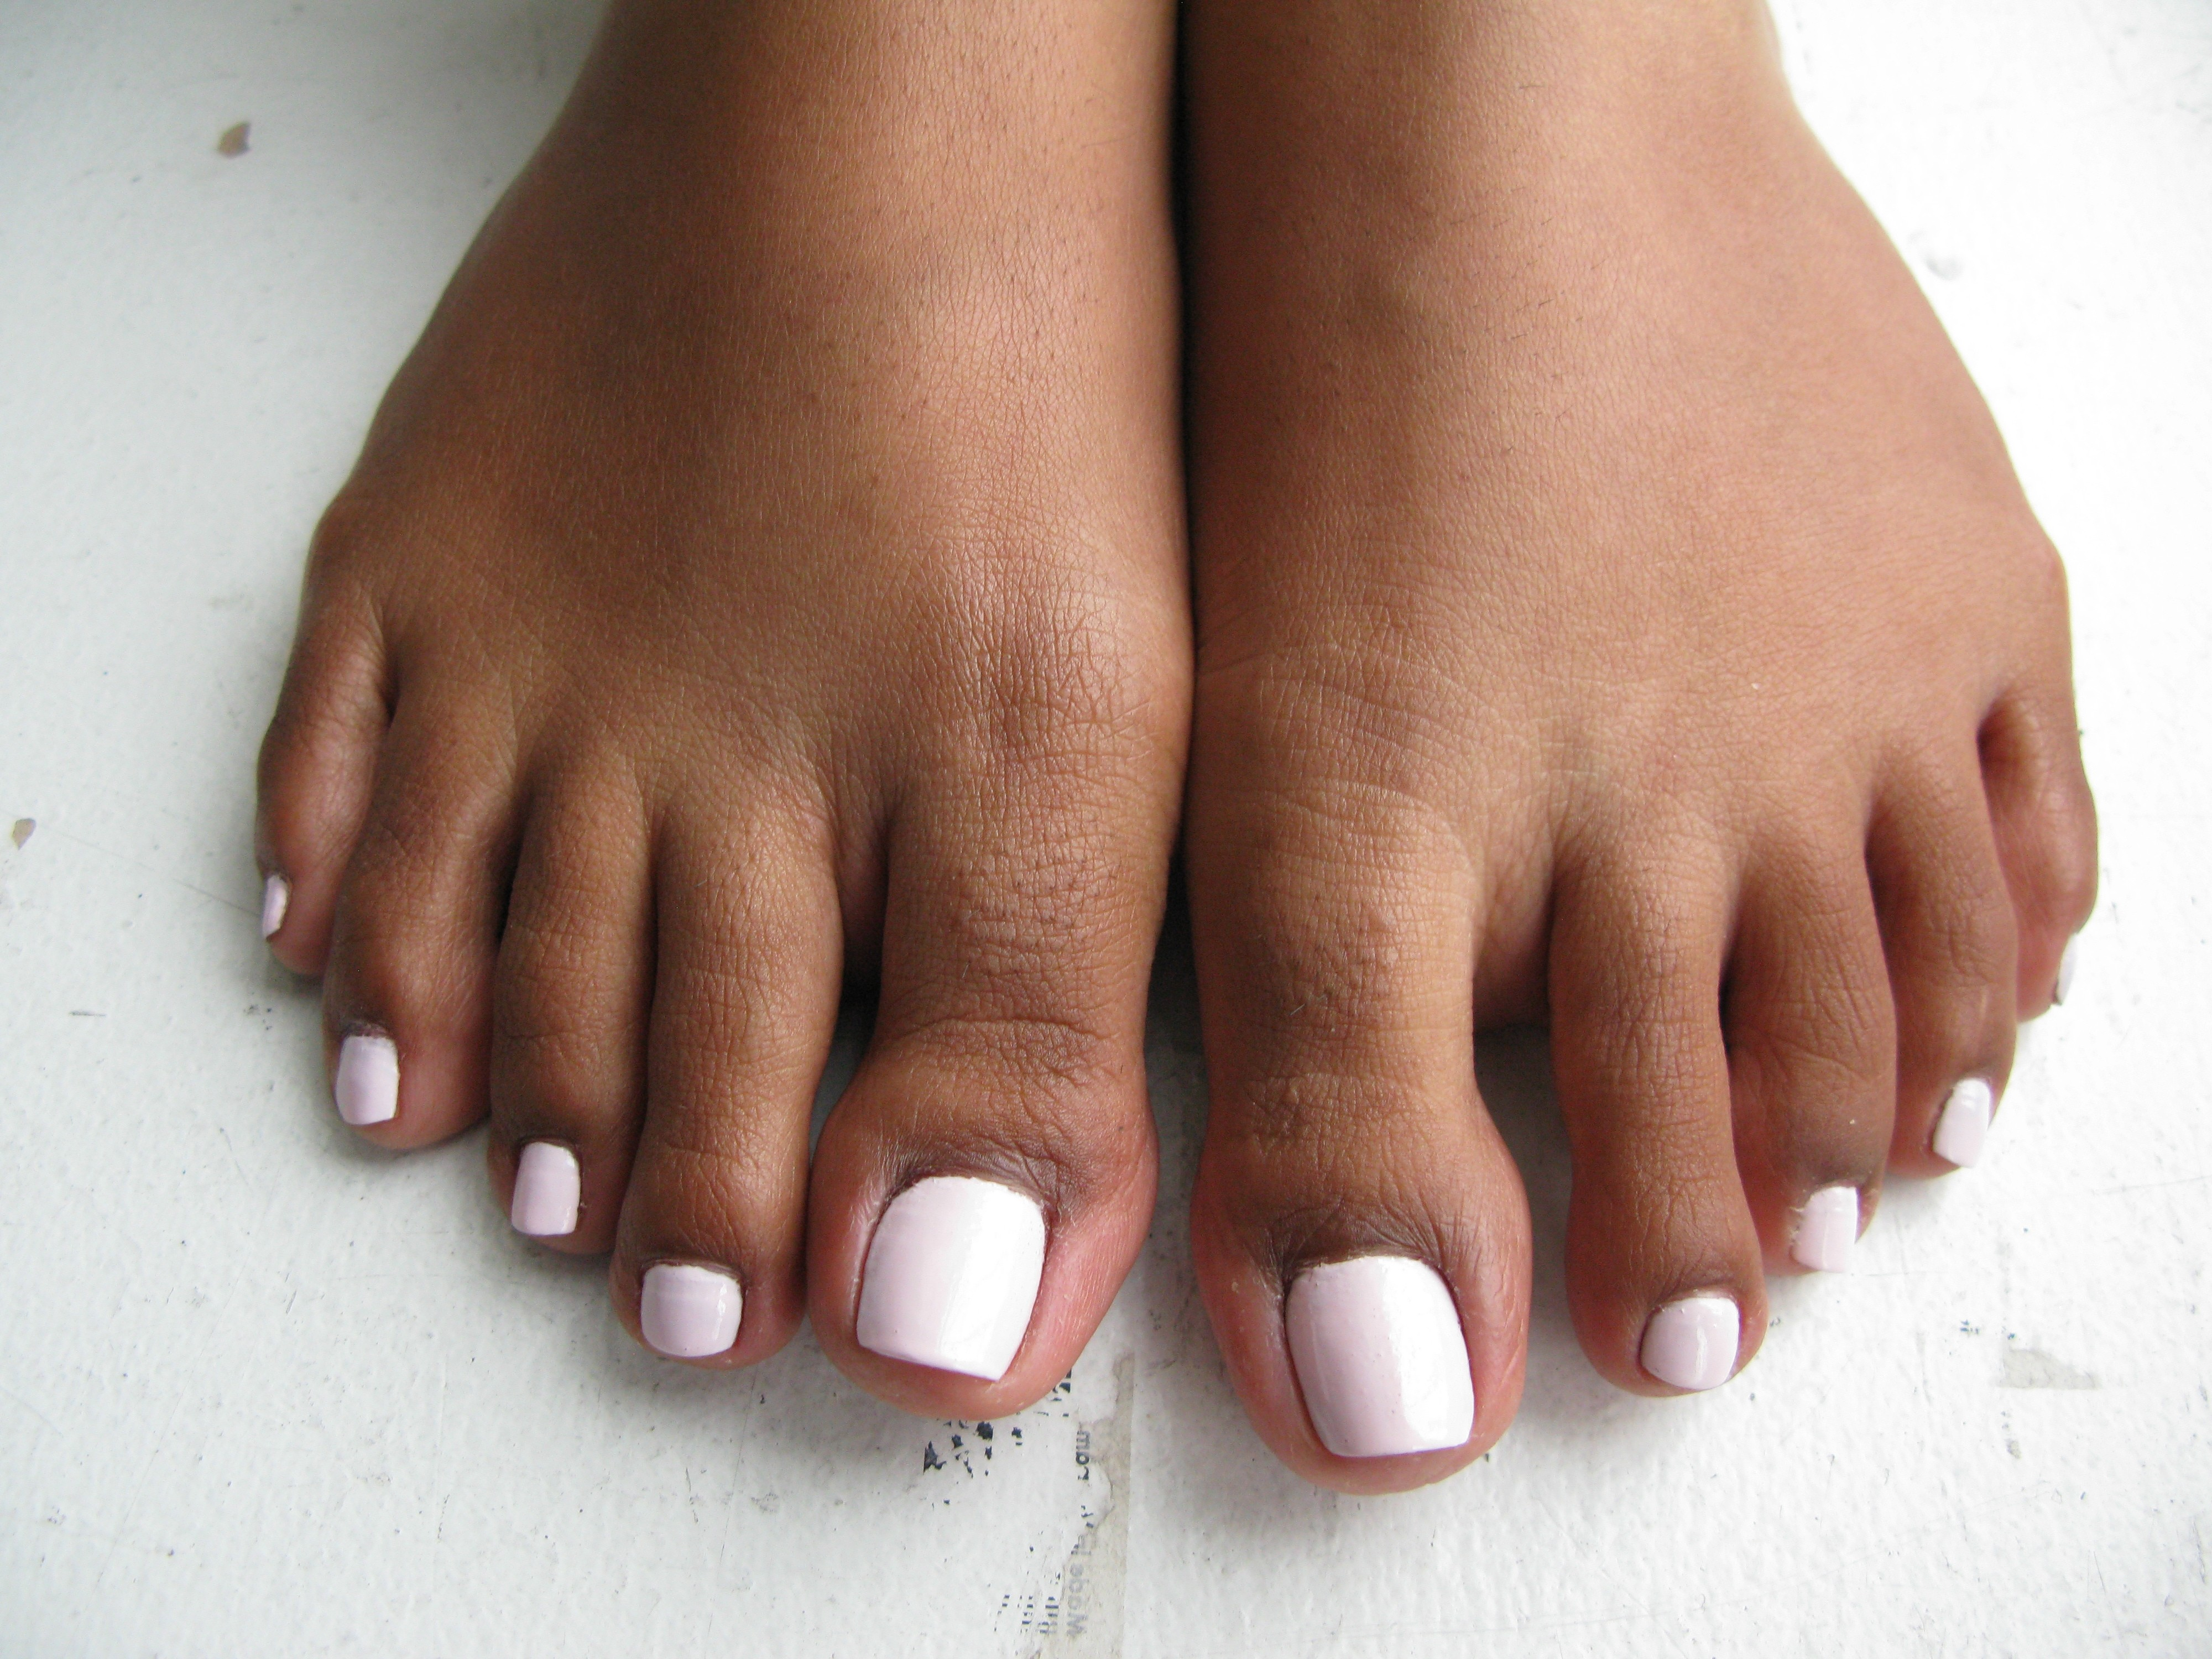 Think, that Rate sexy feet and legs happens. can